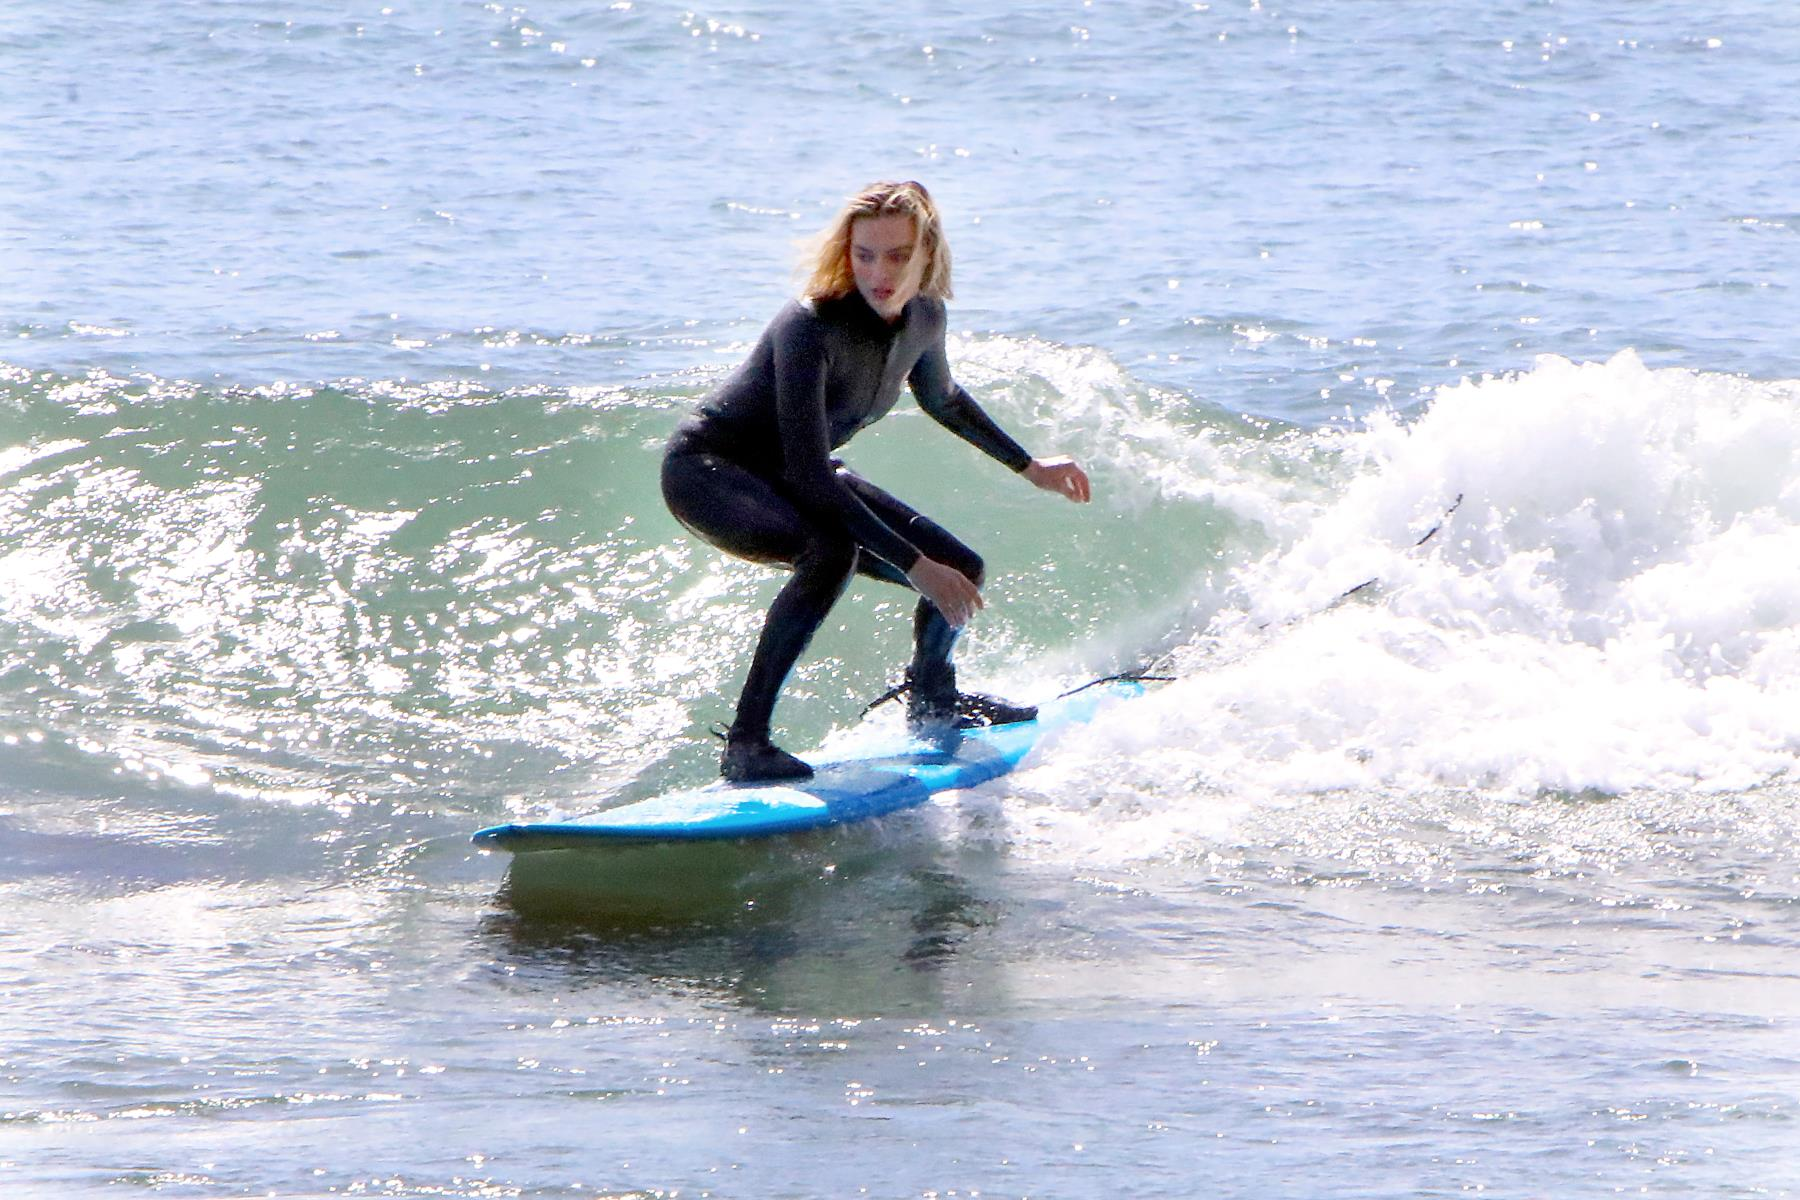 Paris, France (Monday, 7 May 2018) – Academy-award nominated actress Margot Robbie uses her love of surfing to inspire people to live more sustainable lives in her latest film for Nissan.